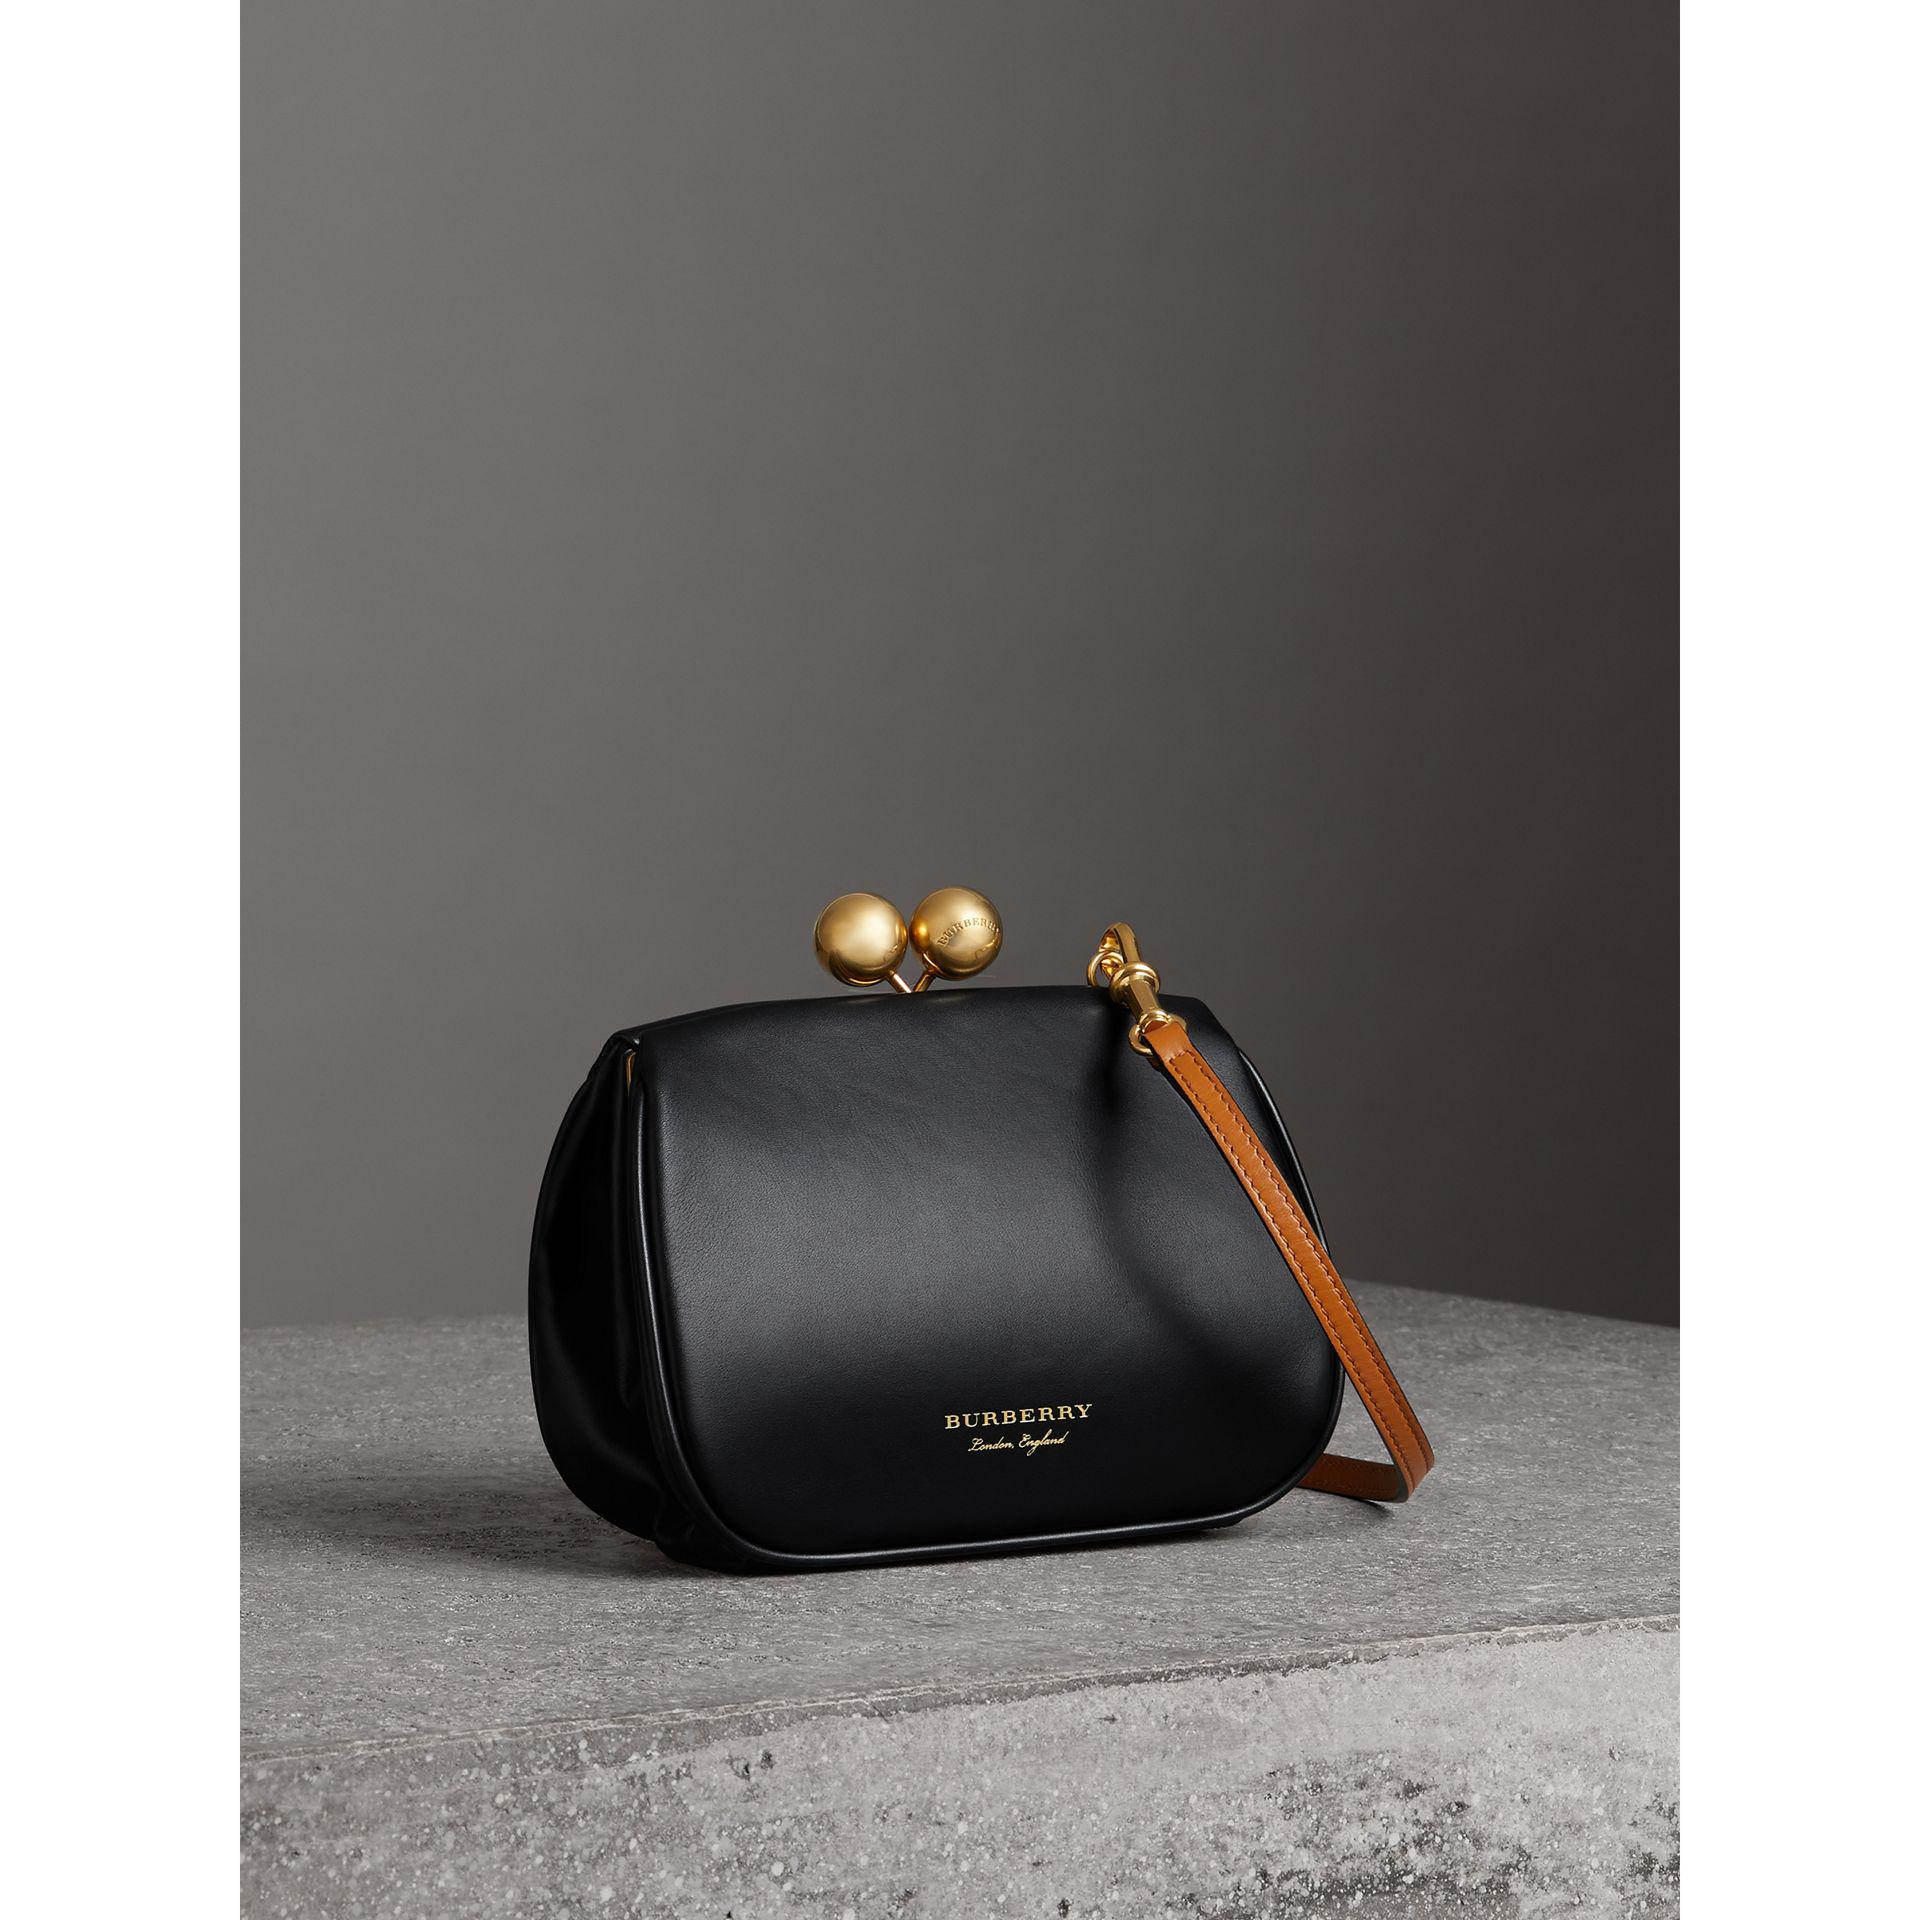 19705d9ca8 Burberry Small Leather Frame Bag in Black - Lyst